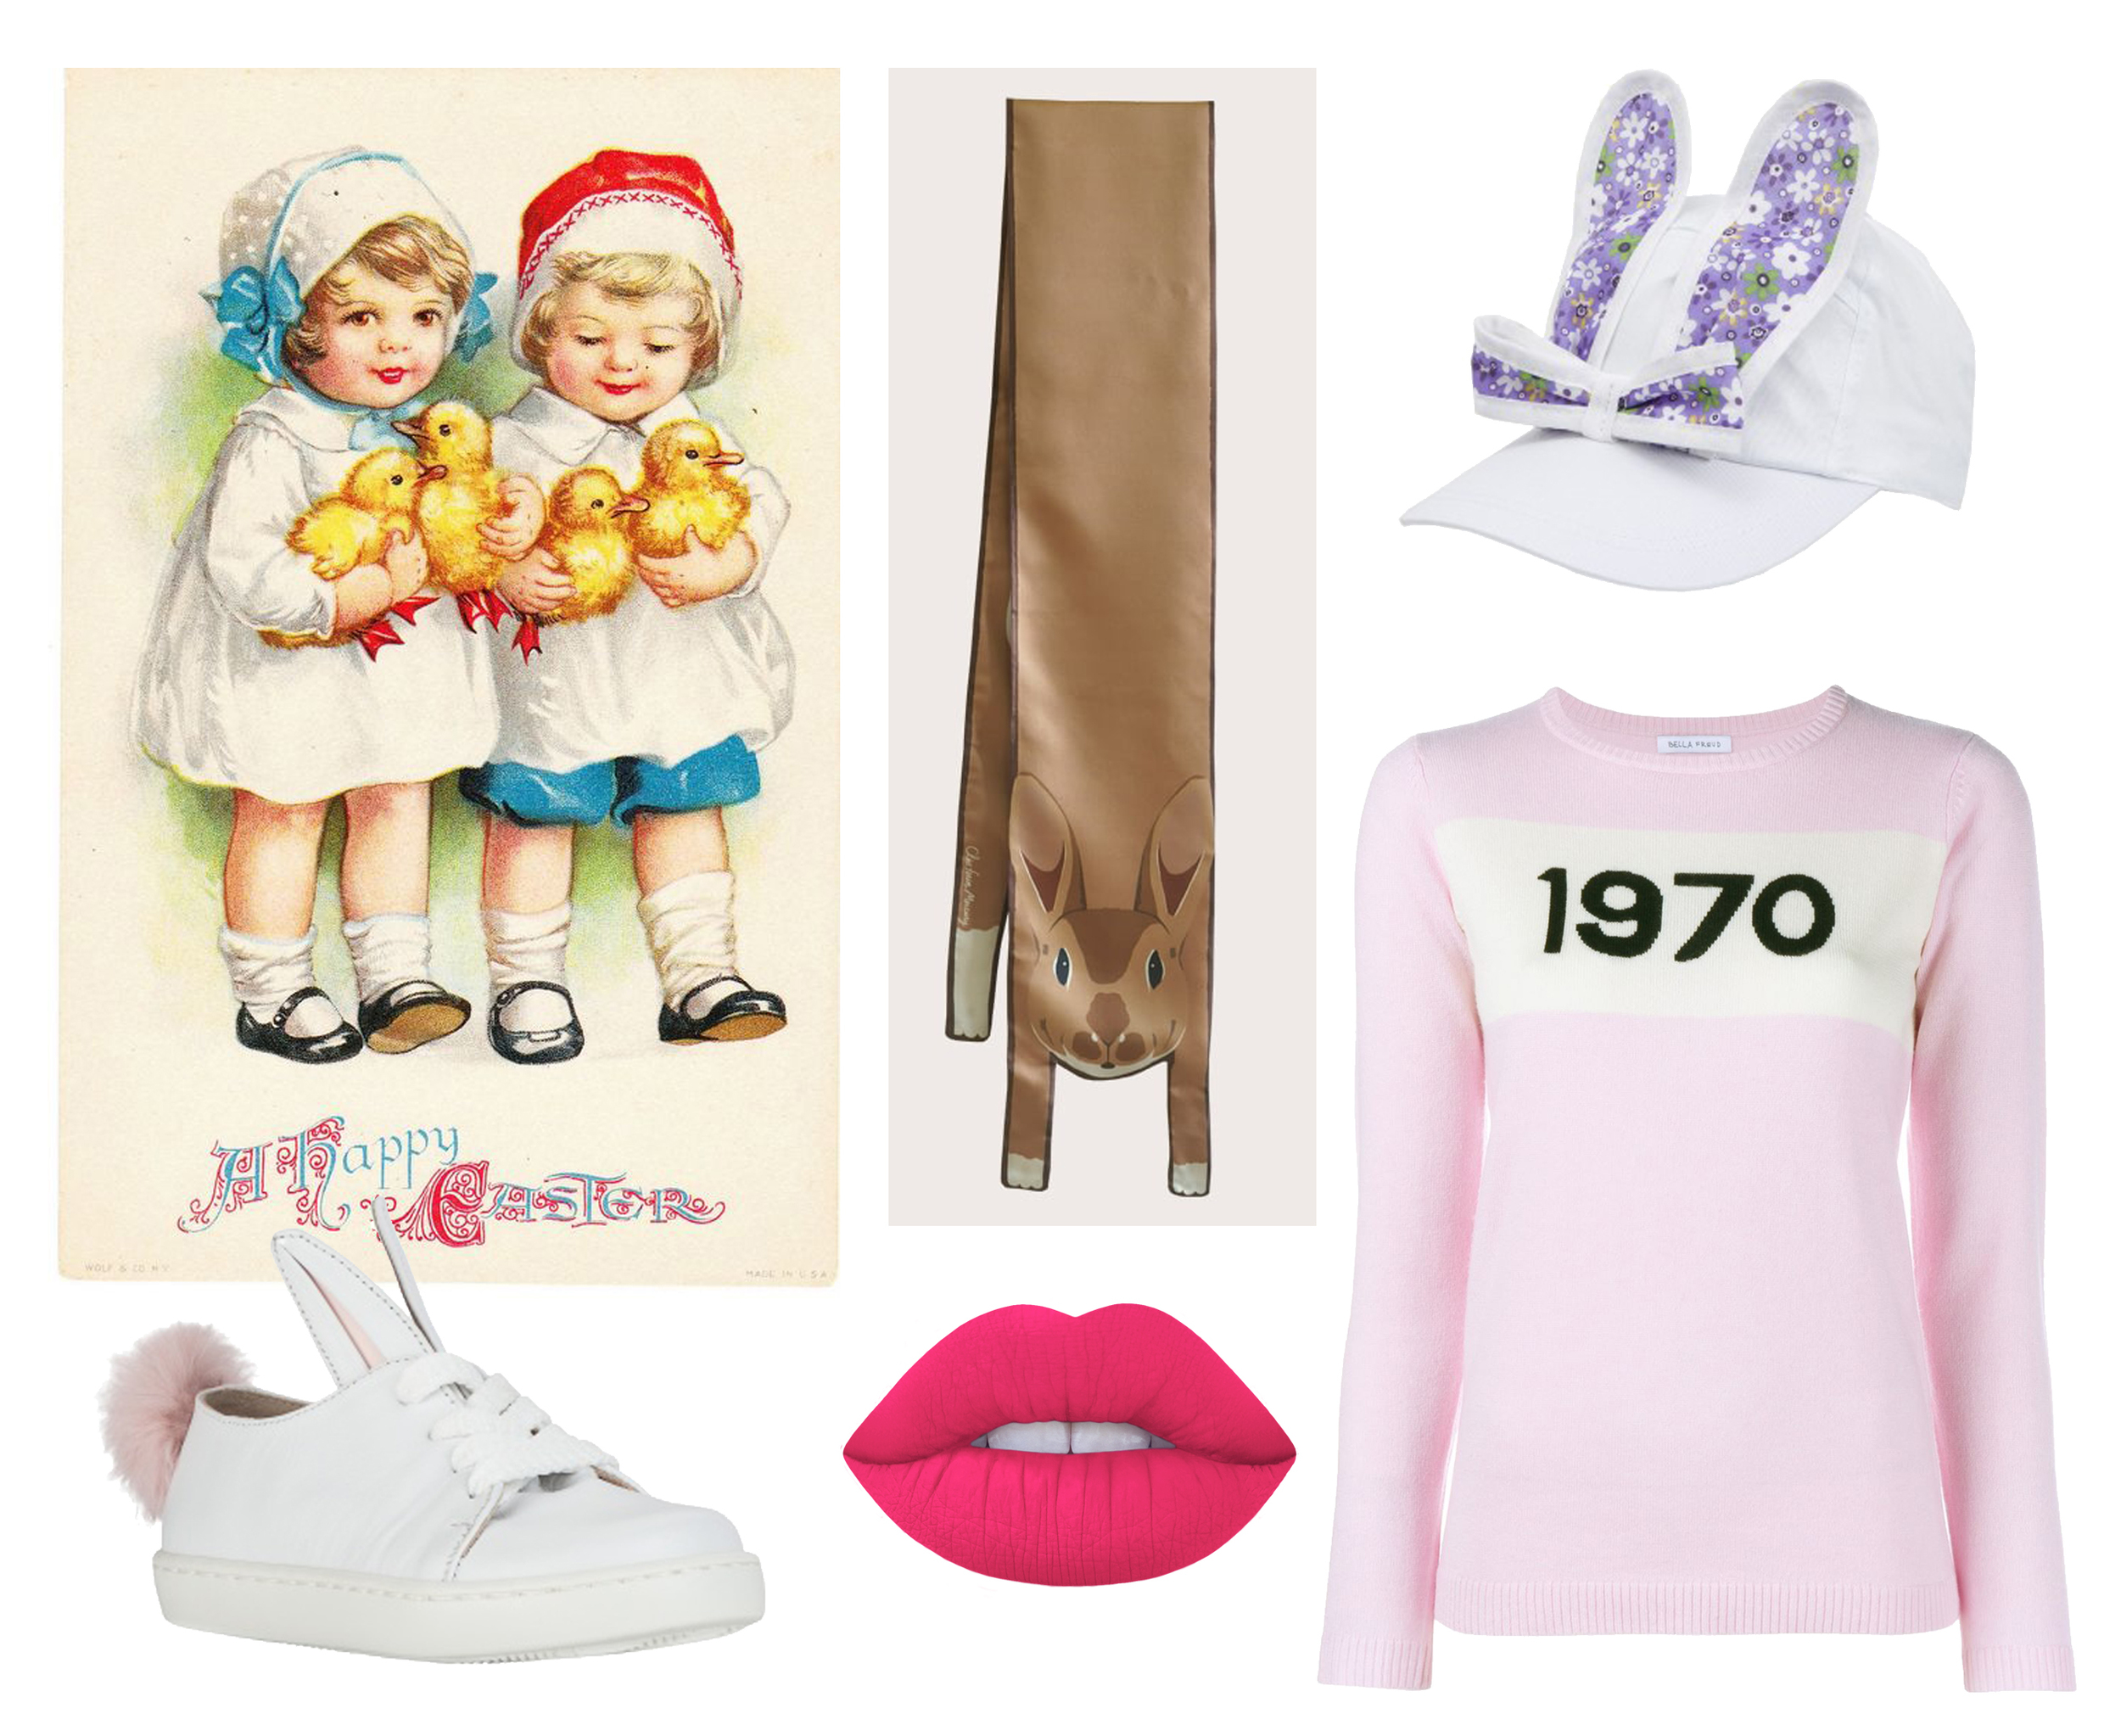 Shop the look:  Brown Rabbit  Silk Scarf,  Bunny Cap  by Bernstock SPeirs,  1970 Jumper by Bella Freud ,  Suedeberry lipstick by Limecrime , and  Trainers  by Minna Parikka.